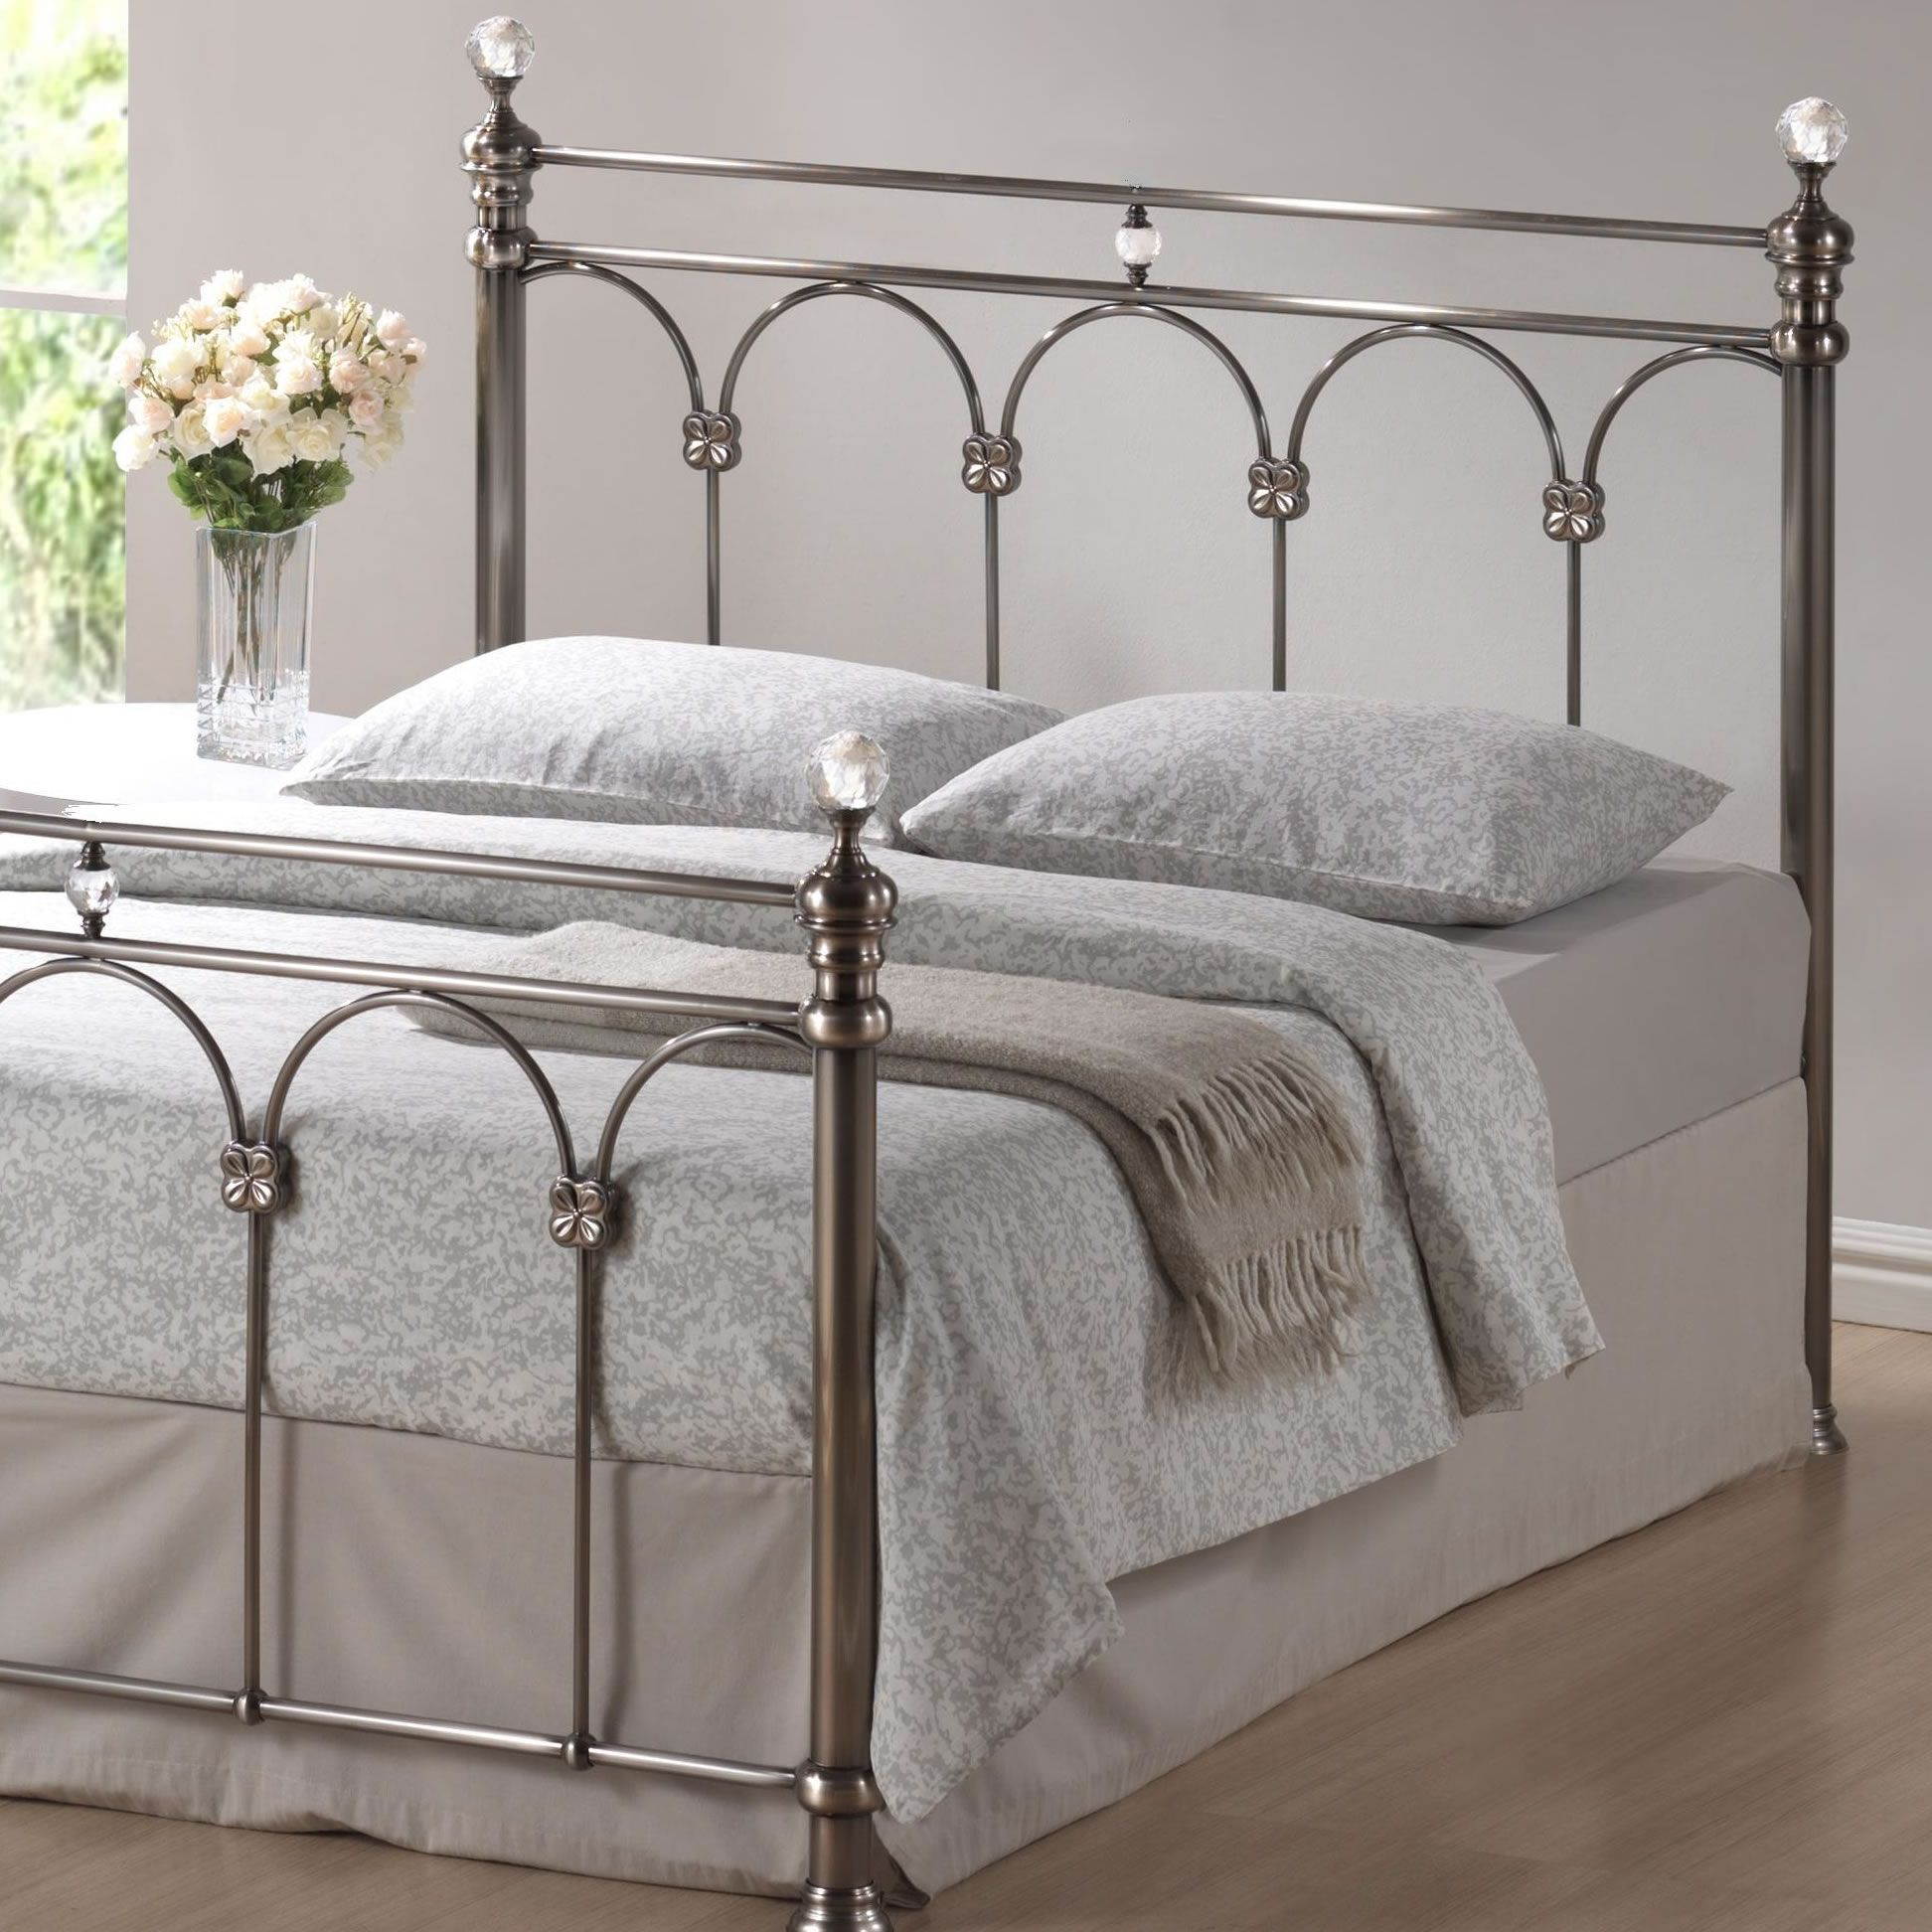 Best An Elegant Metal Bed Frame Featuring A Nickel Finish And 400 x 300